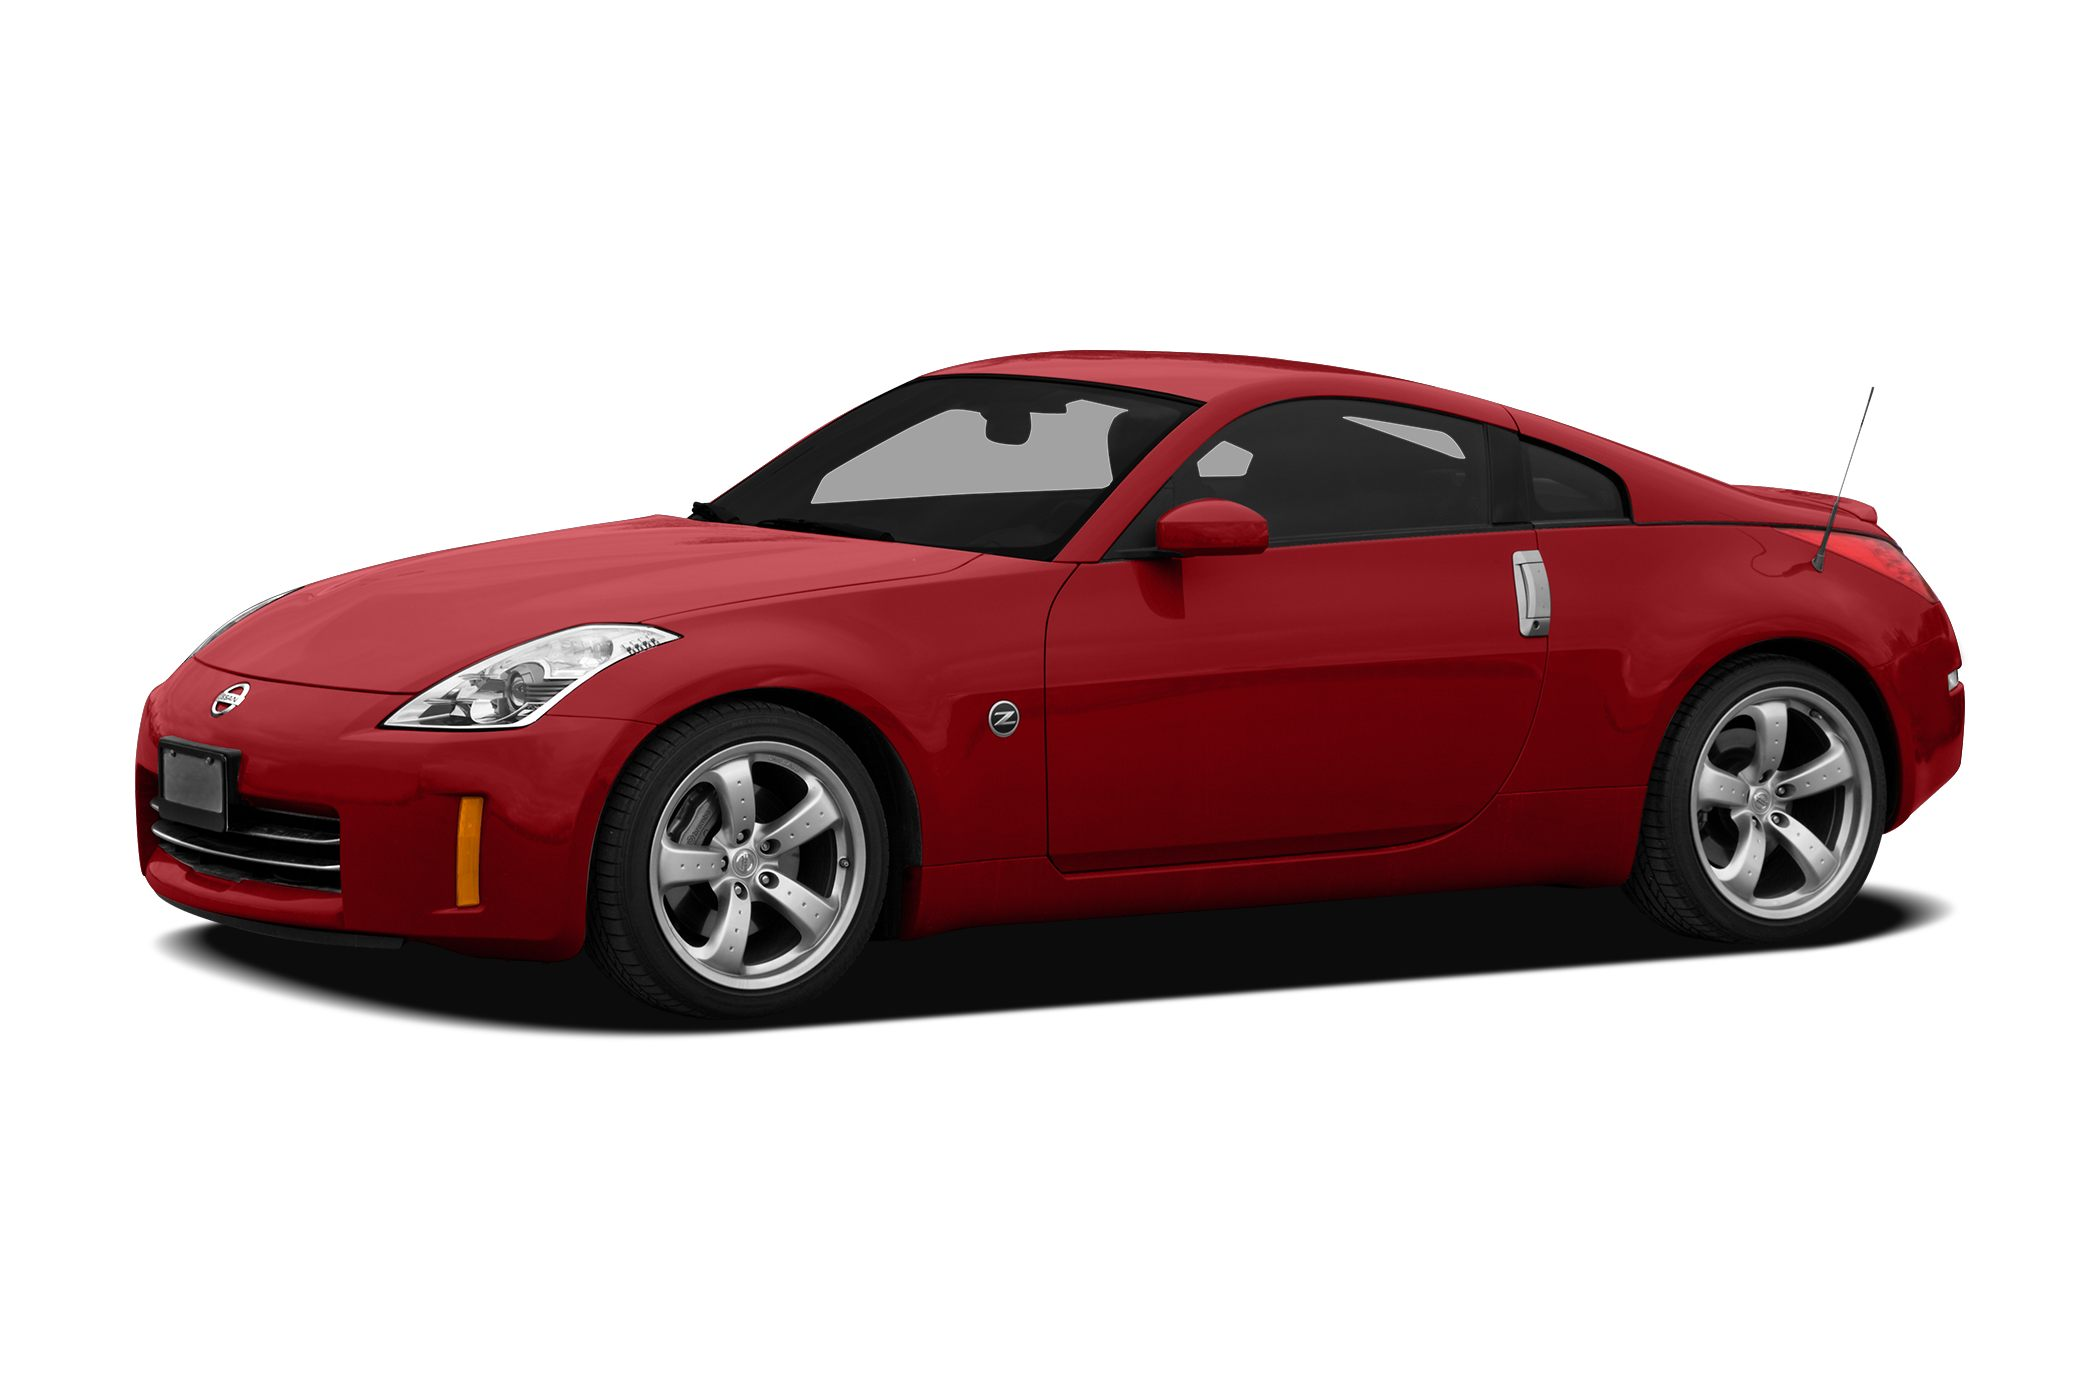 2007 Nissan 350Z Grand Touring Coupe for sale in Phoenix for $13,995 with 107,089 miles.